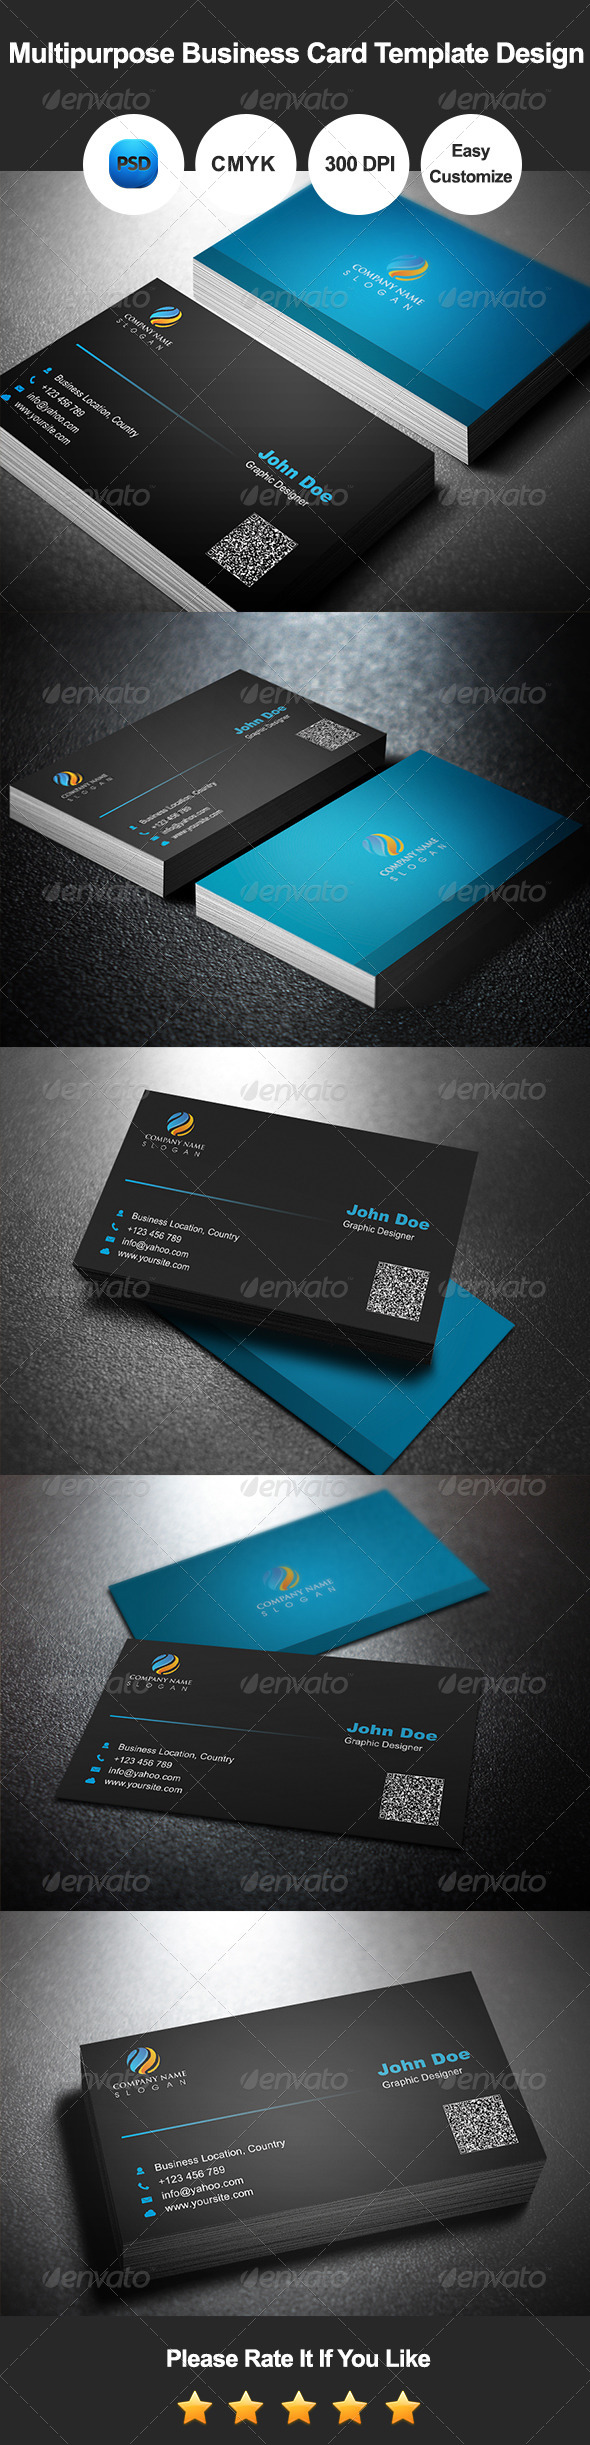 GraphicRiver Multipurpose Business Card Template Design 7546824